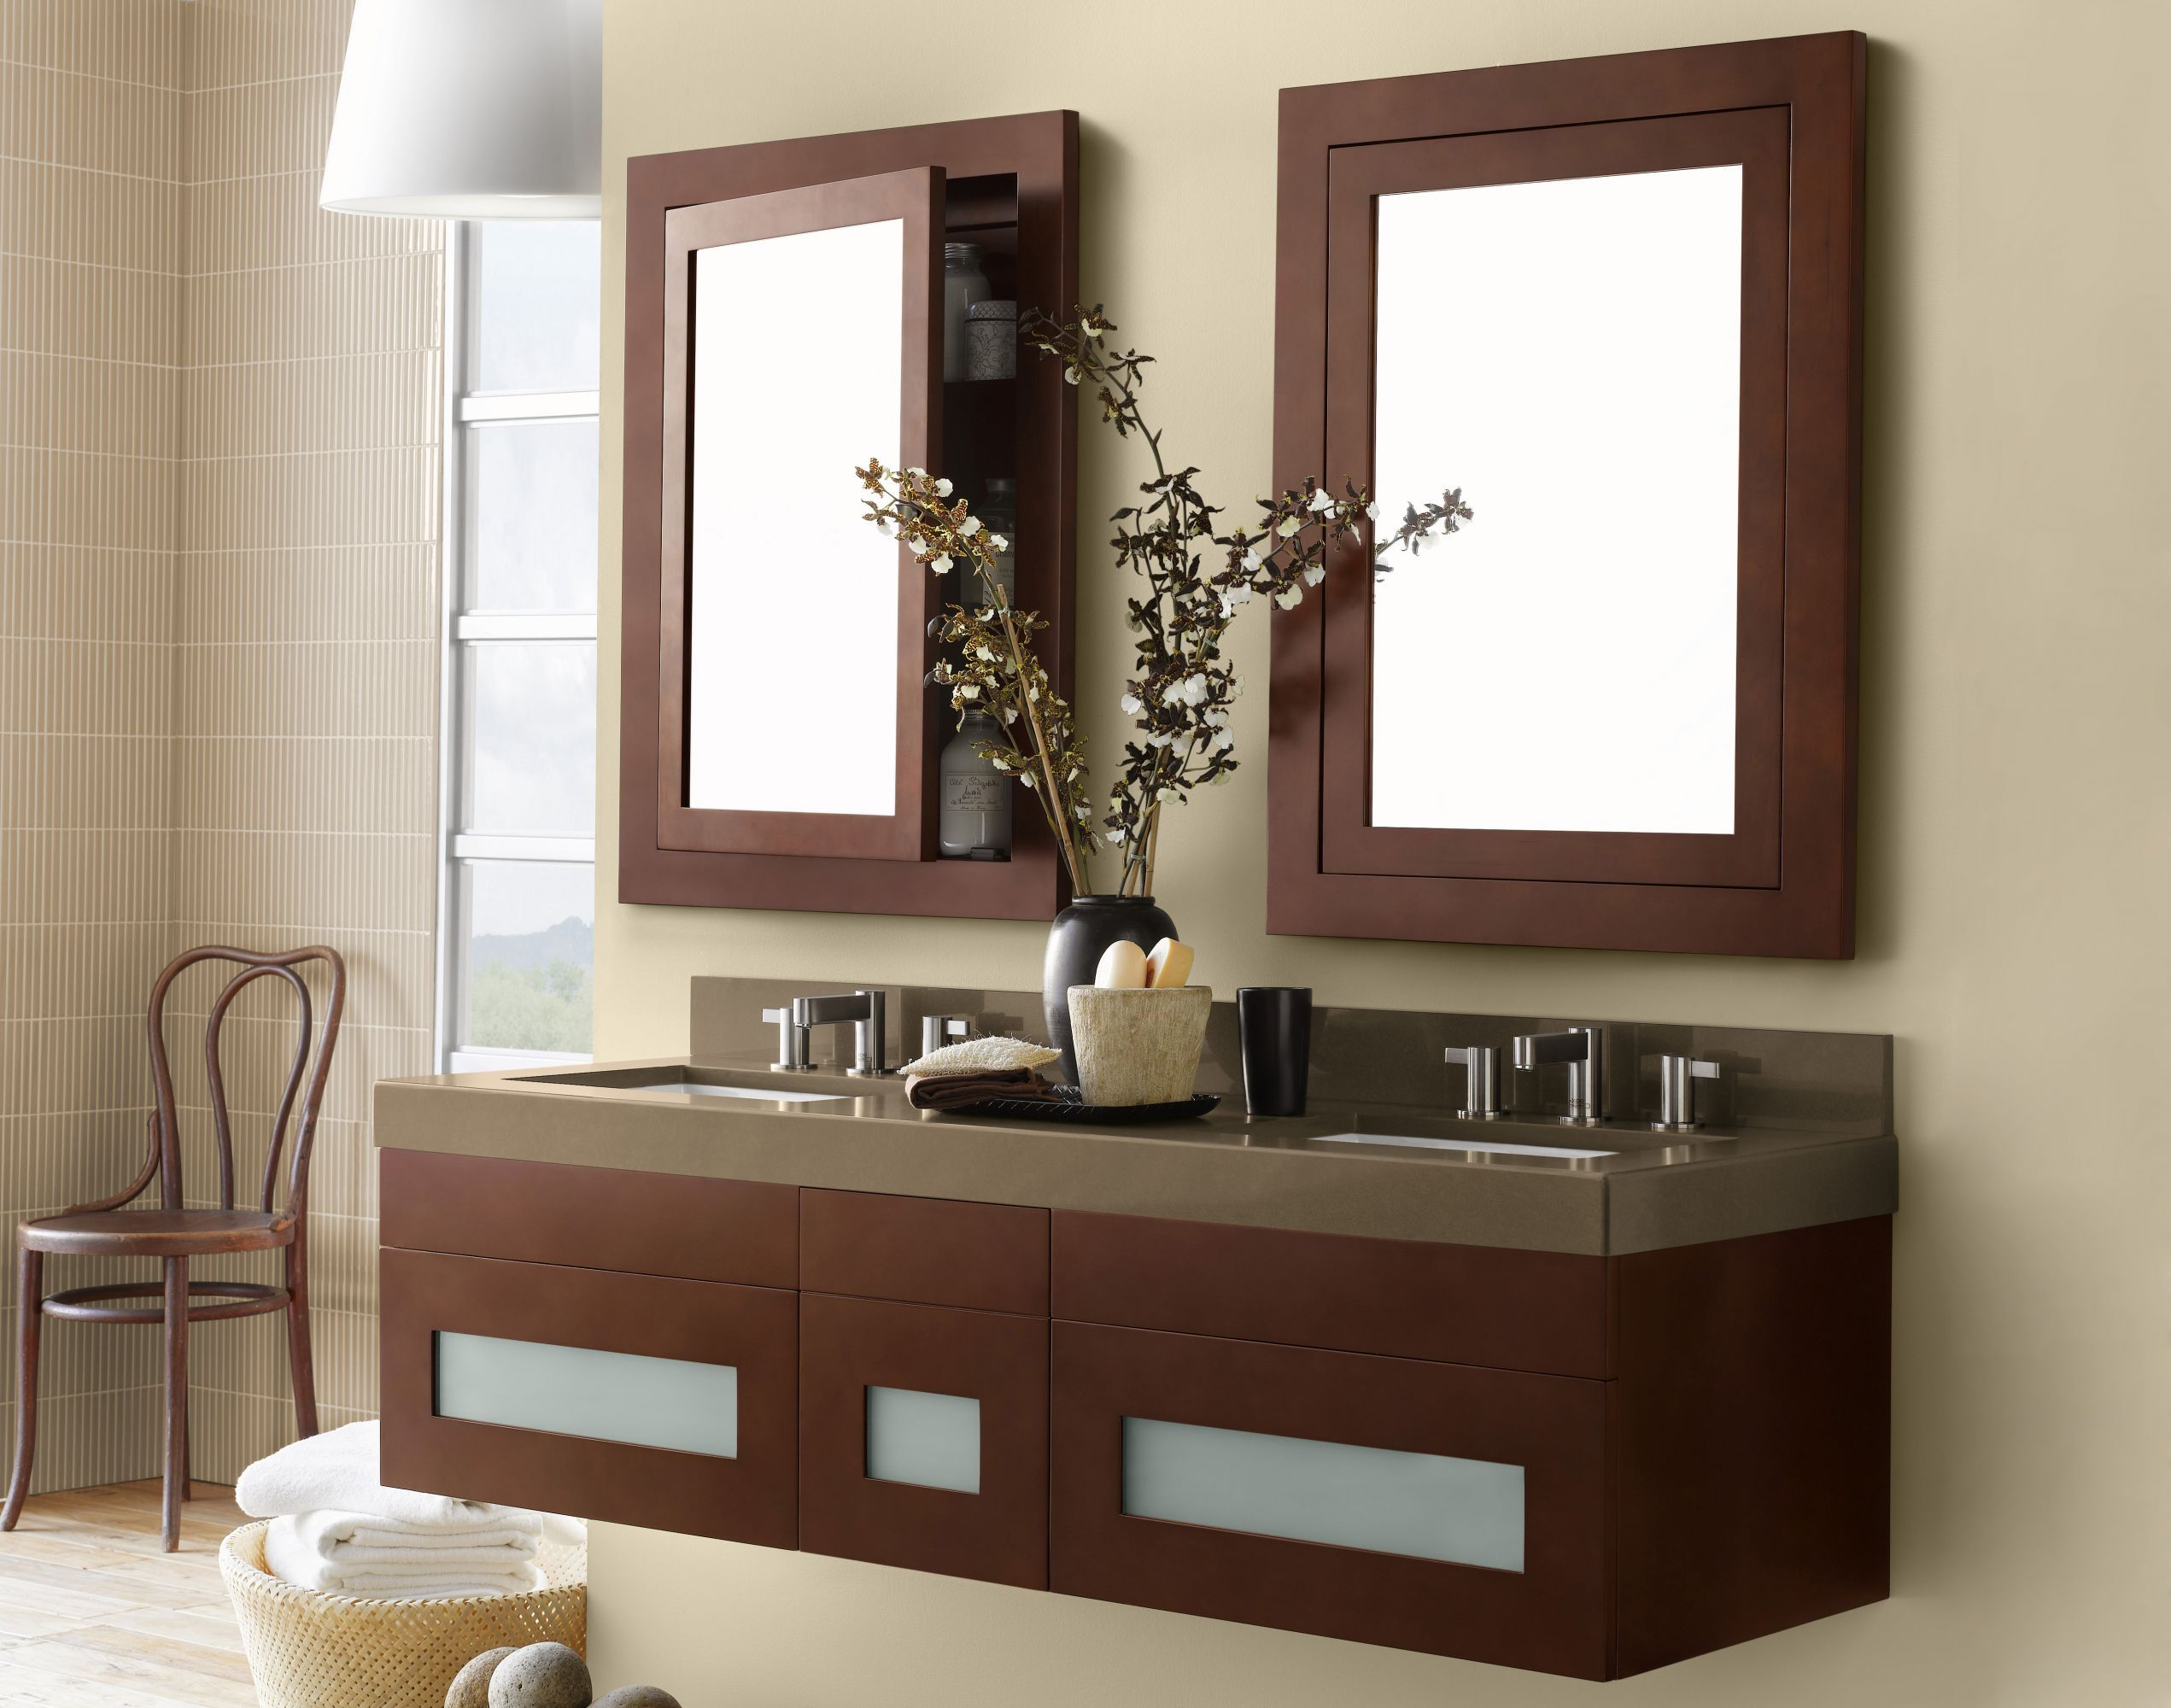 Bathroom And Kitchen Remodeling Collection Endearing Design Decoration